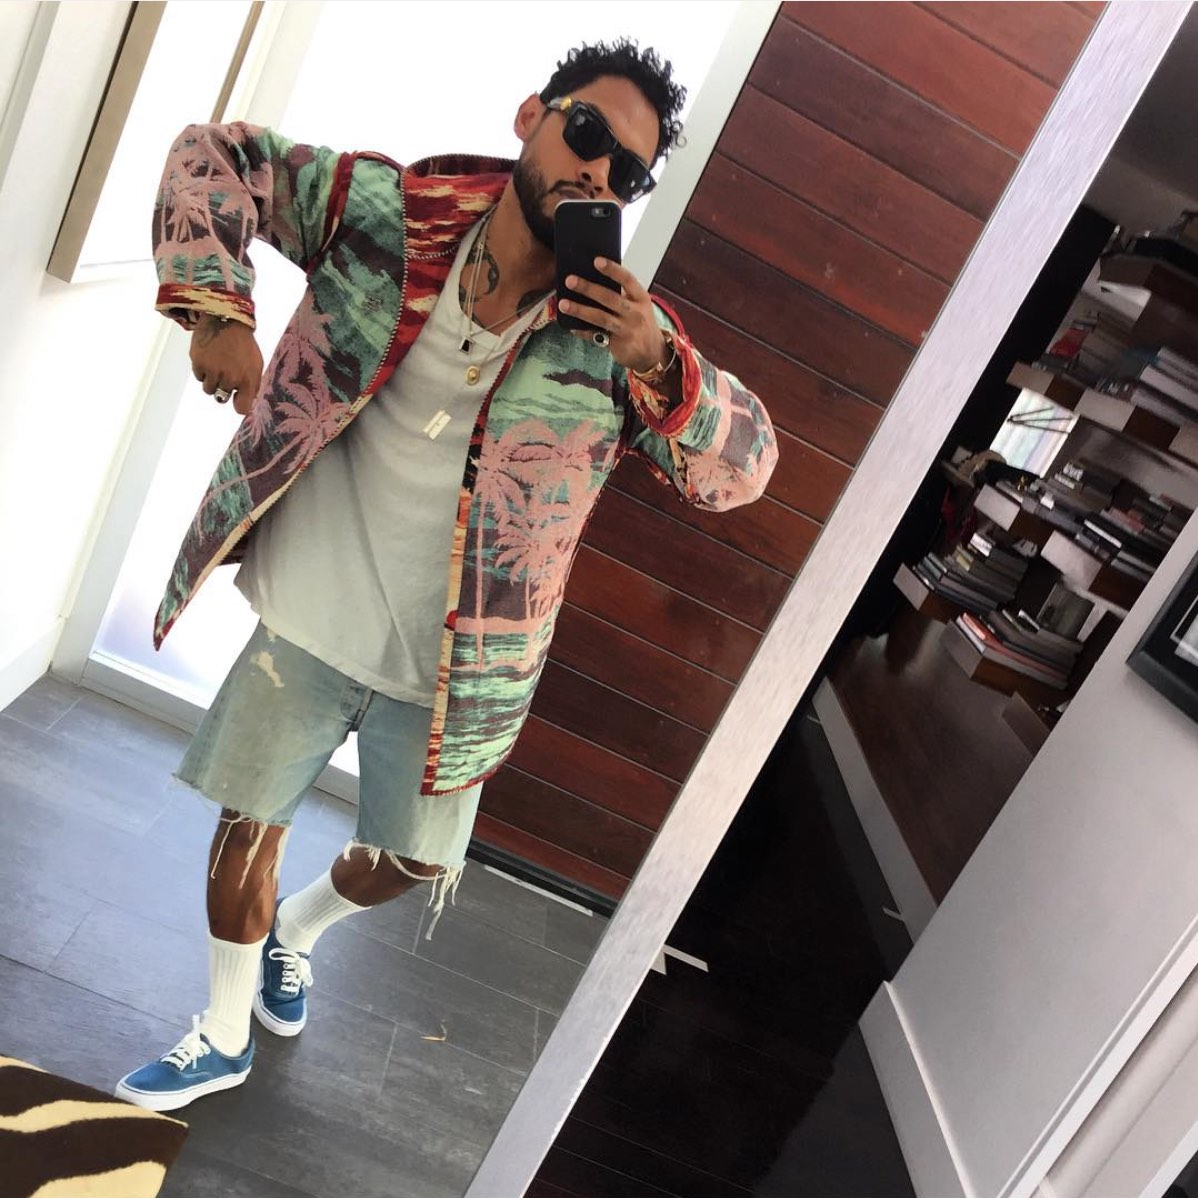 Miguel shows off his moves and style on instagram